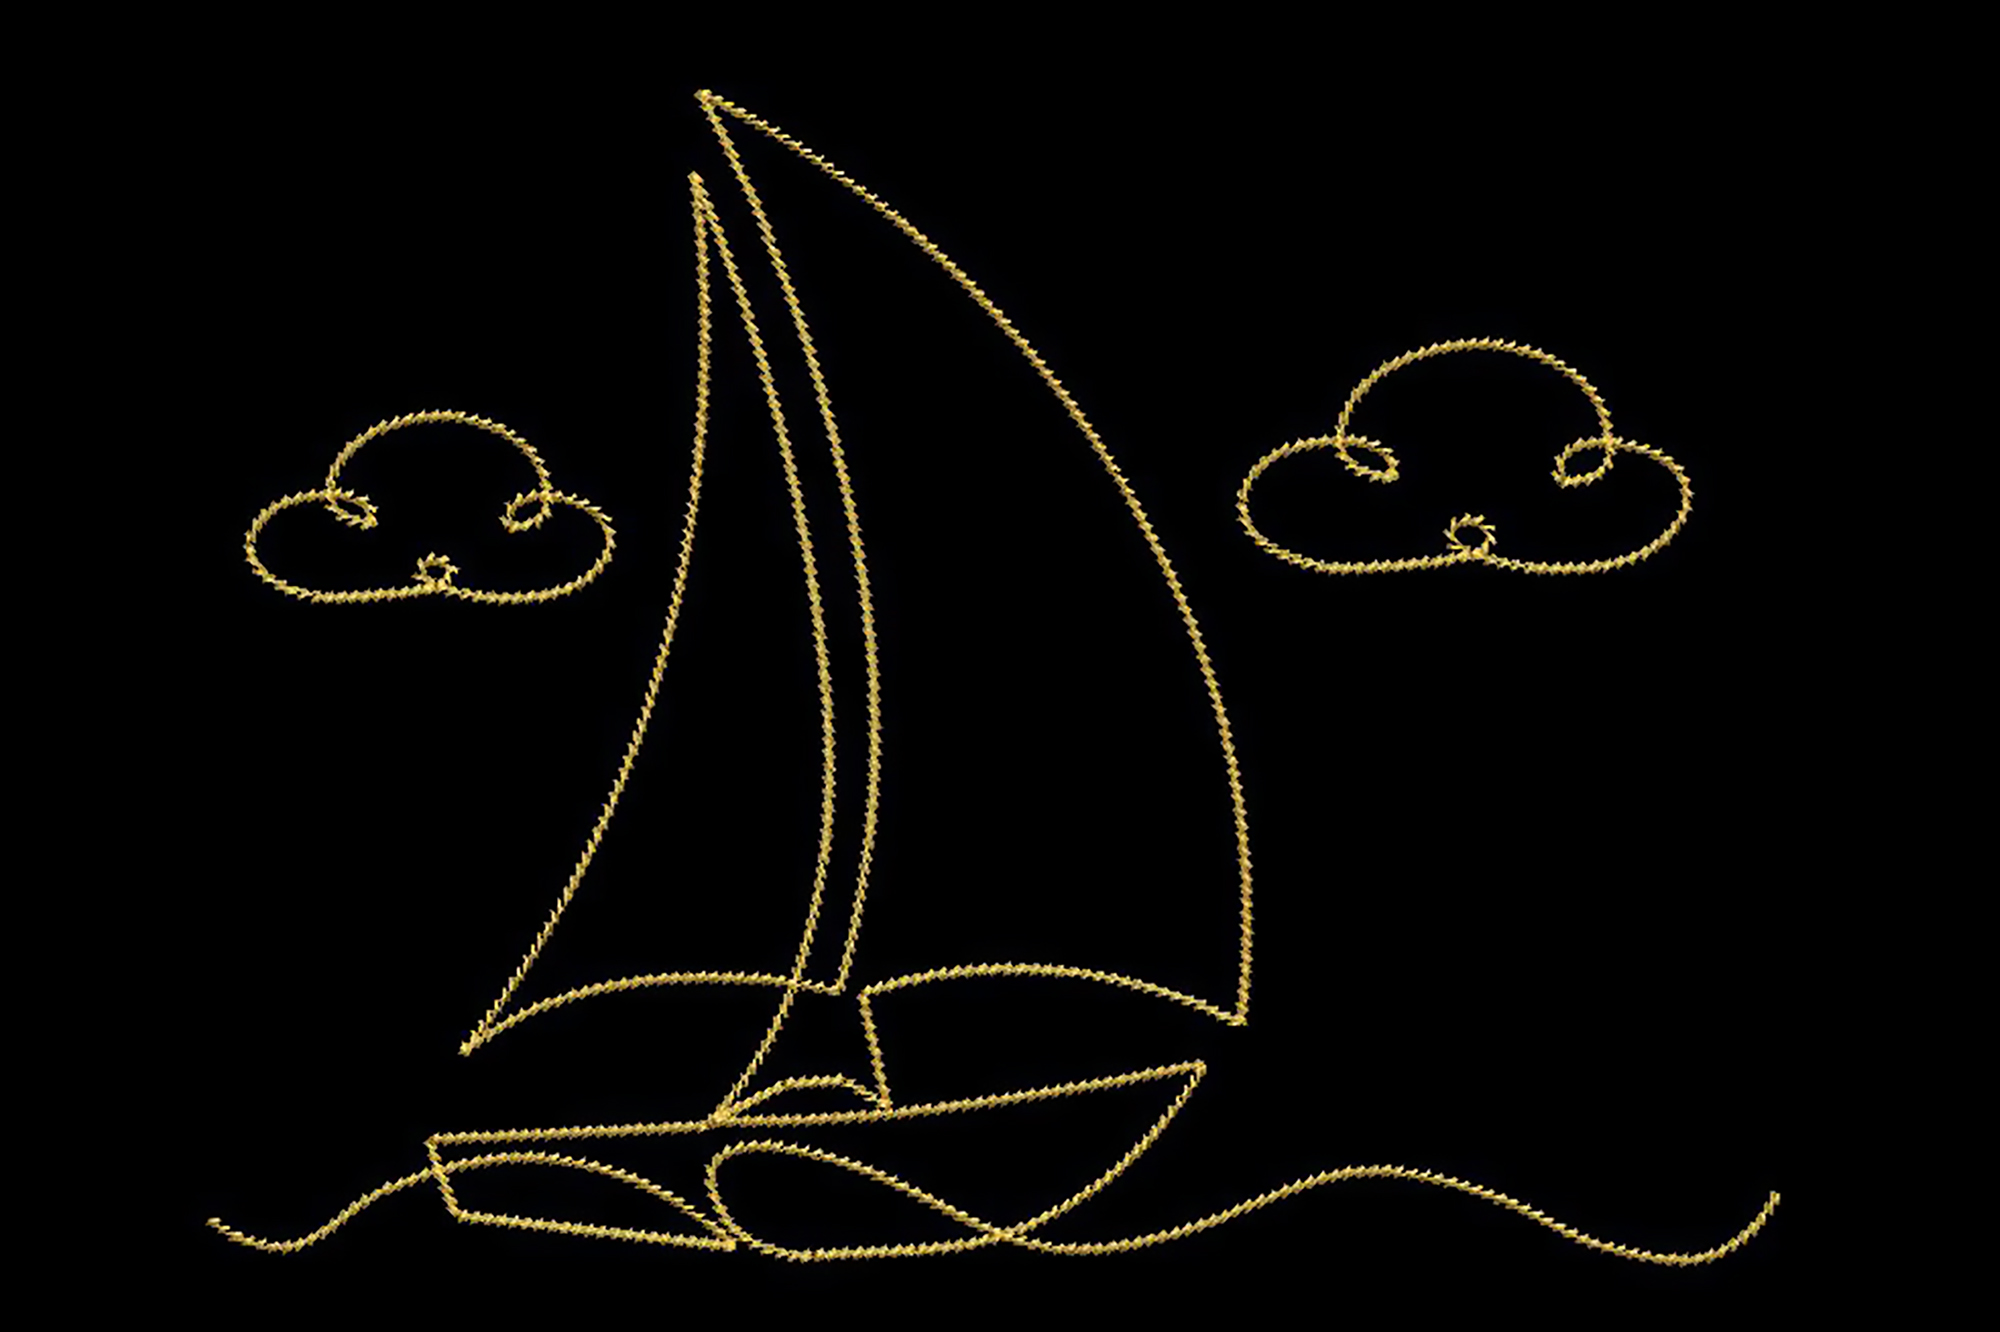 Download Free Minimalist Boat Creative Fabrica for Cricut Explore, Silhouette and other cutting machines.